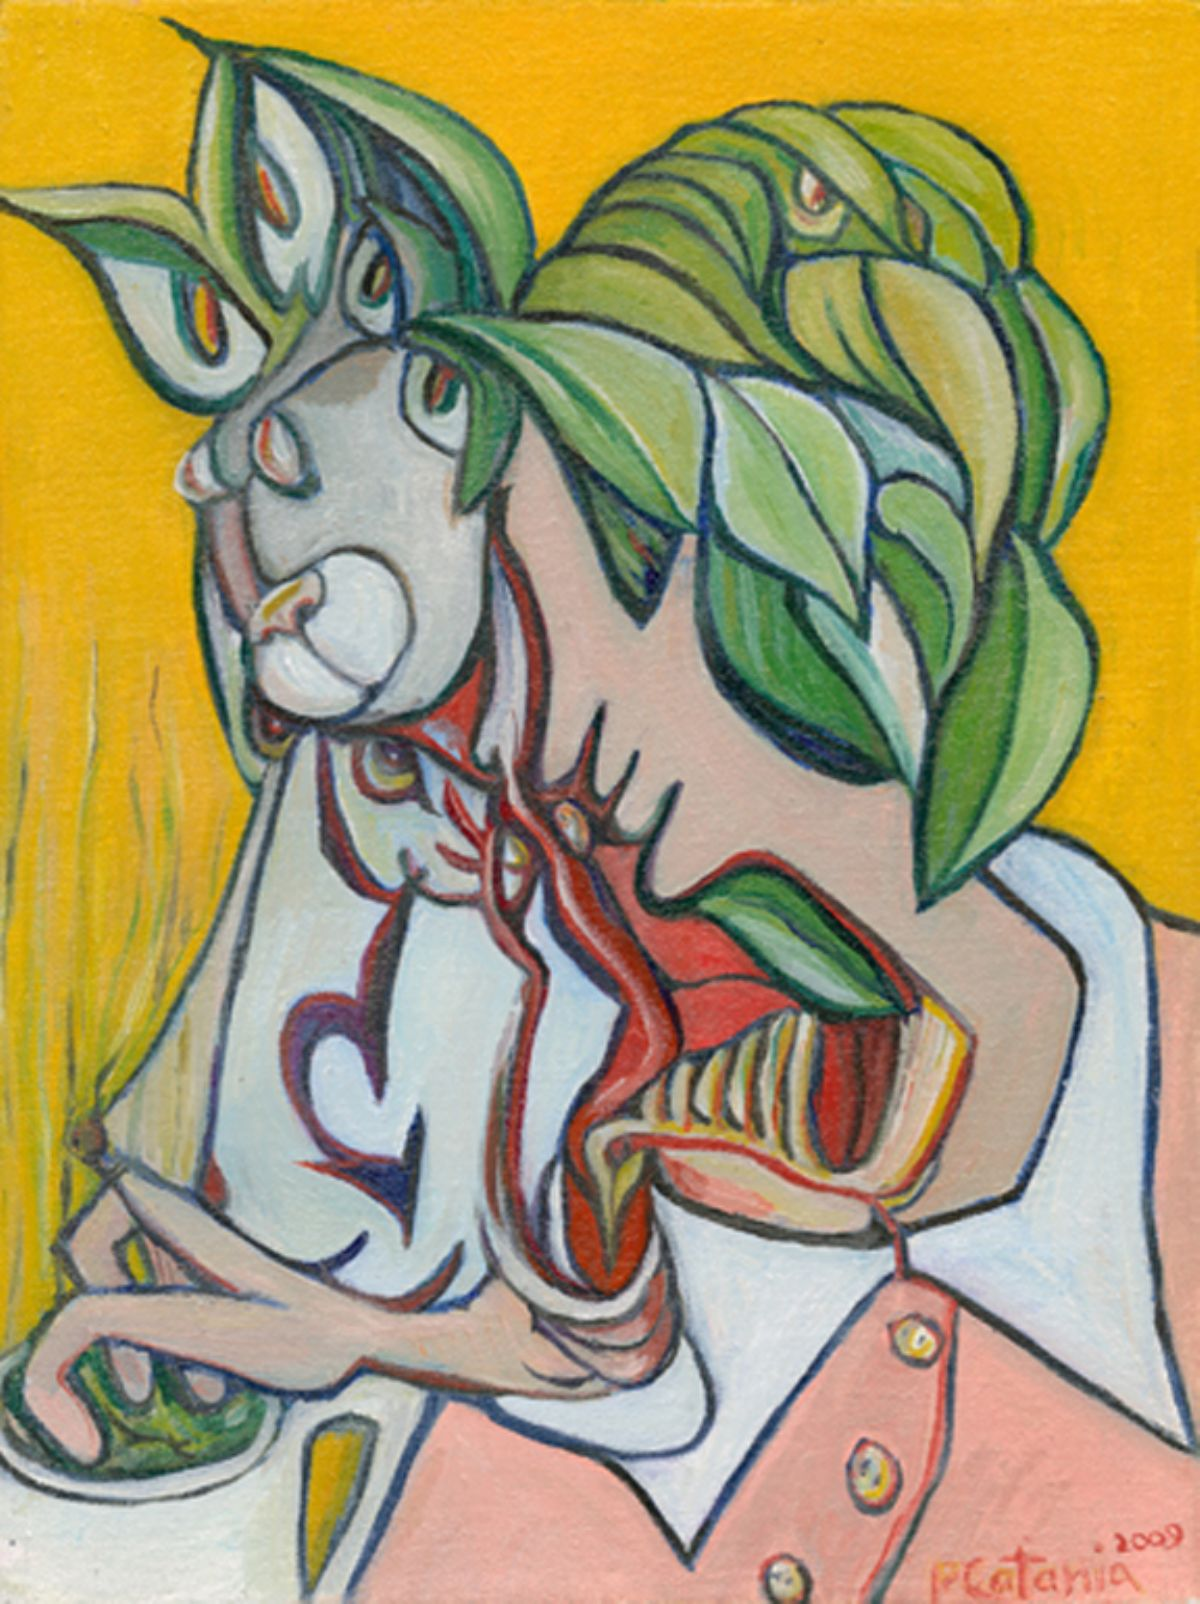 Alice artwork by Philip Catania - art listed for sale on Artplode